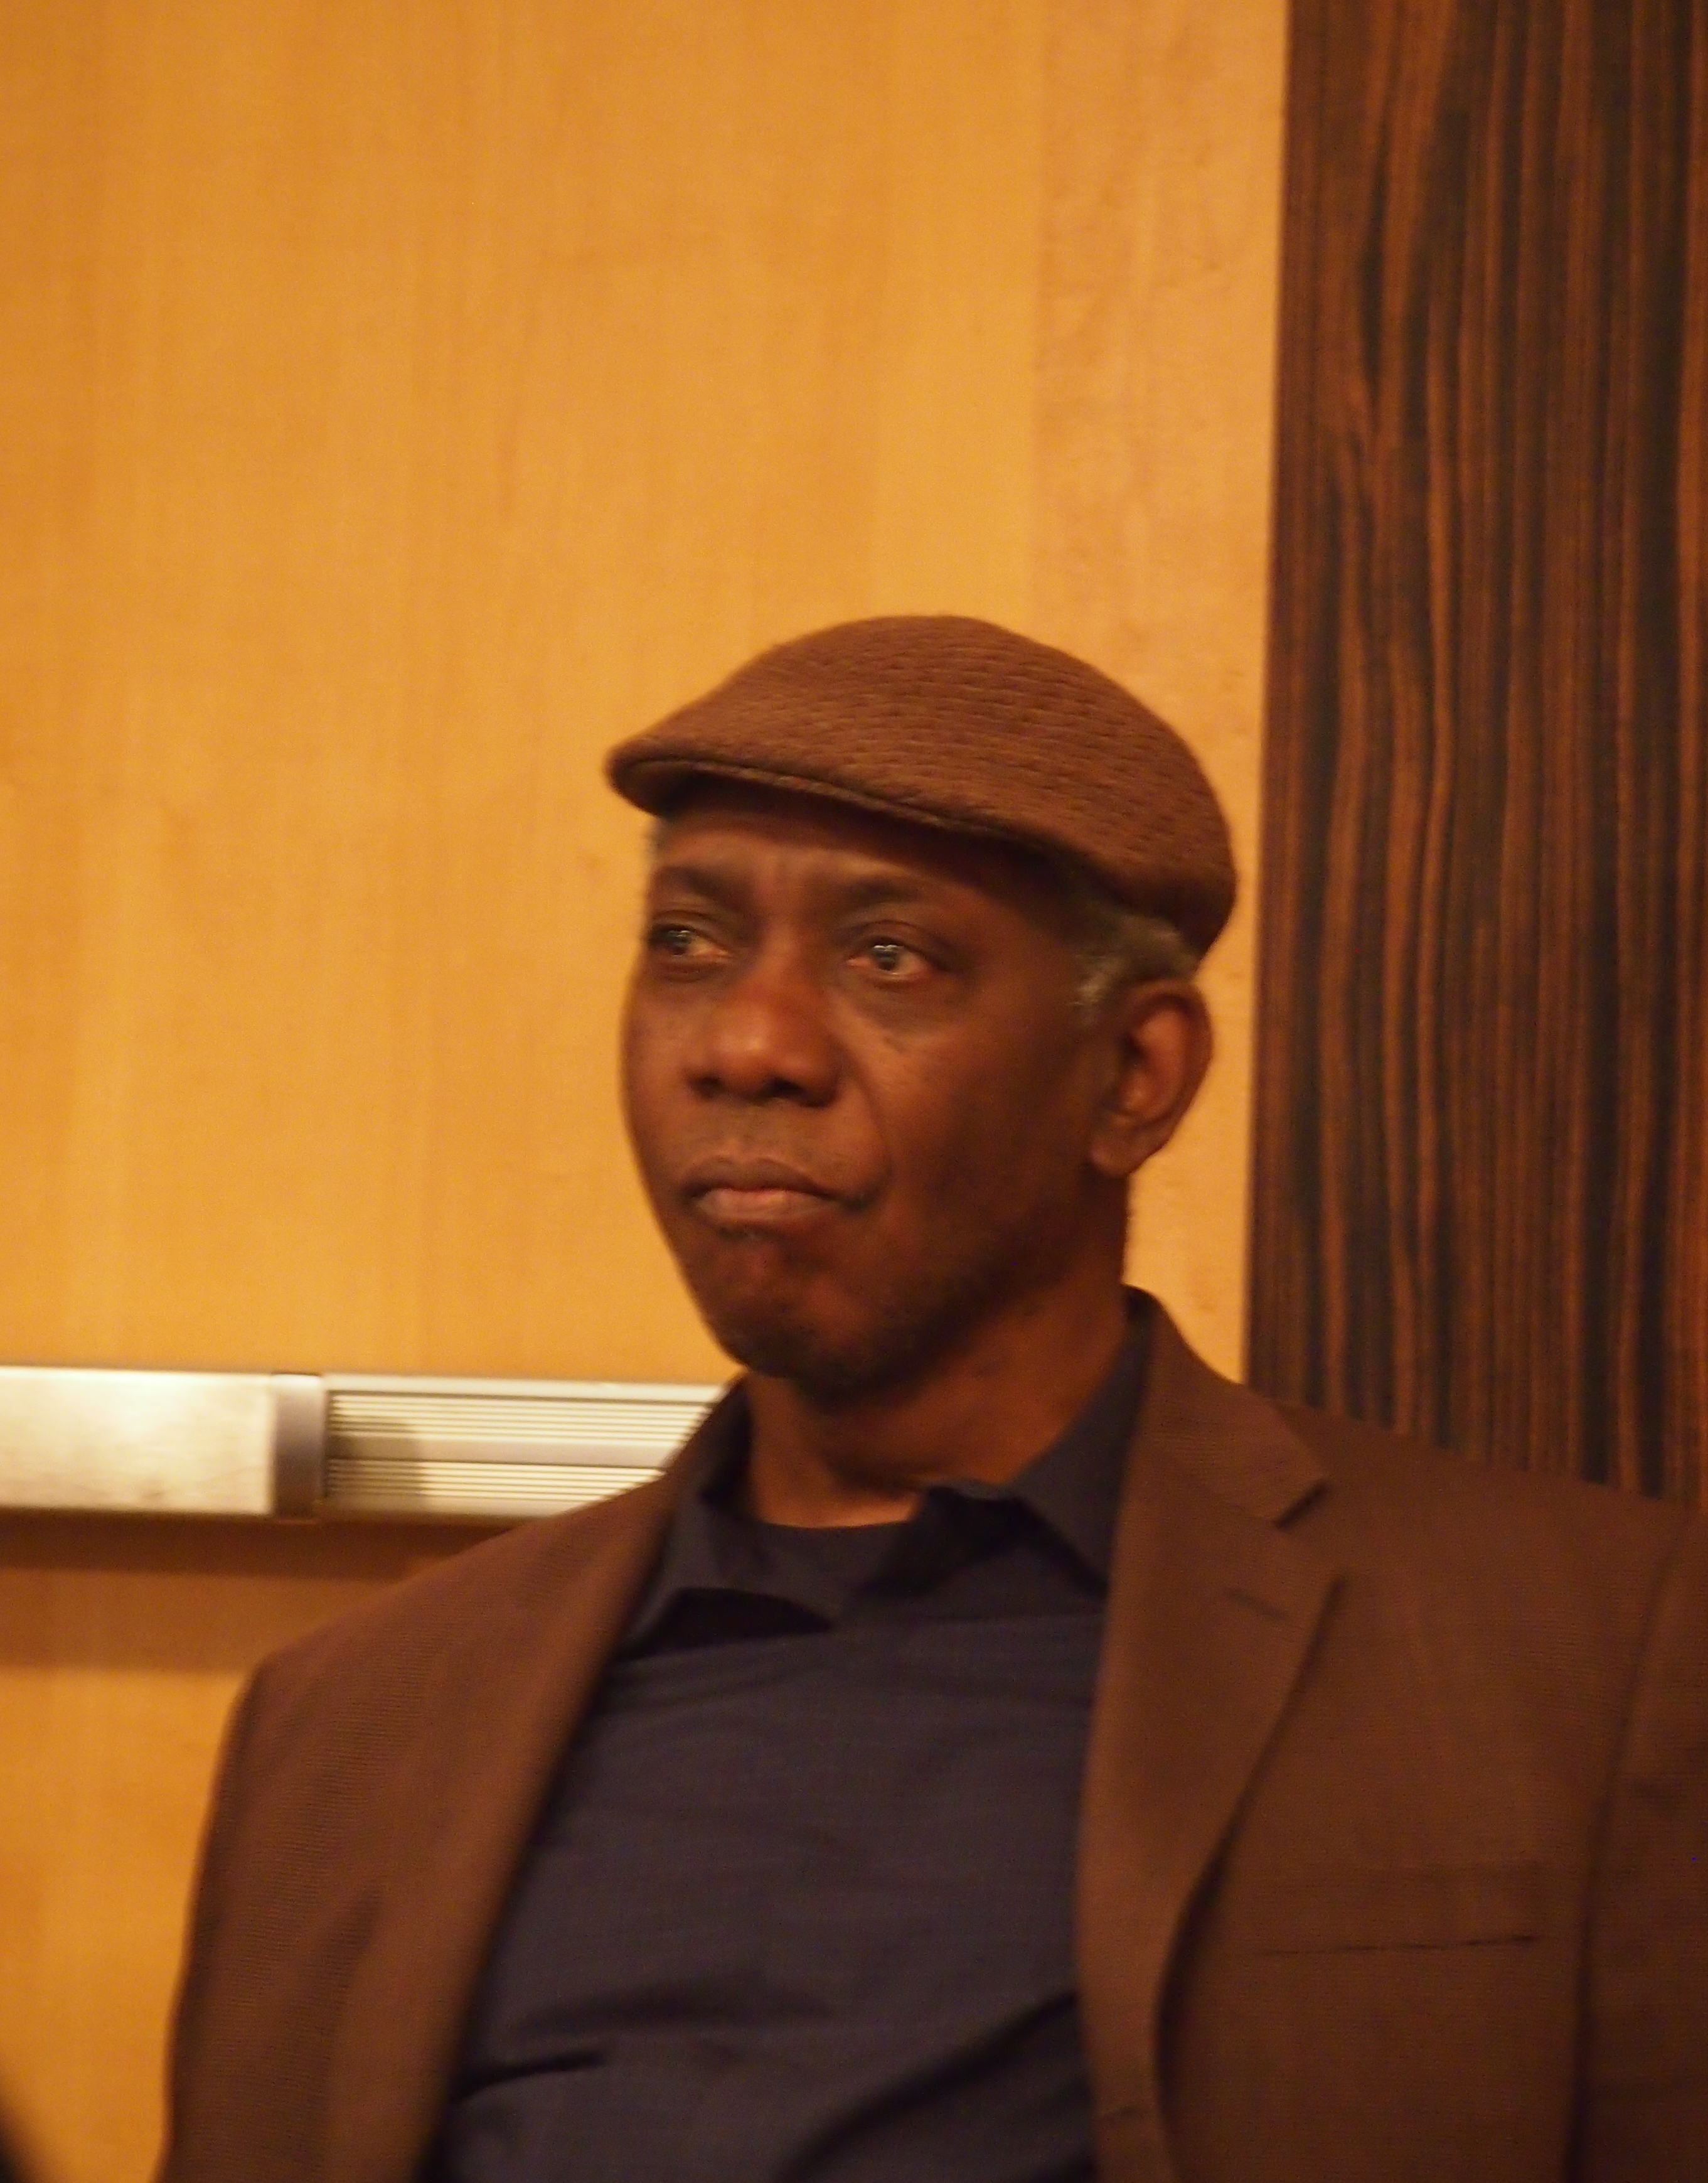 yusef komunyakaa facing it Yusef komunyakaa - poet - poet yusef komunyakaa first received wide recognition following the 1984 publication of copacetic, a collection of poems built from colloquial speech which demonstrated his incorporation of jazz influences.